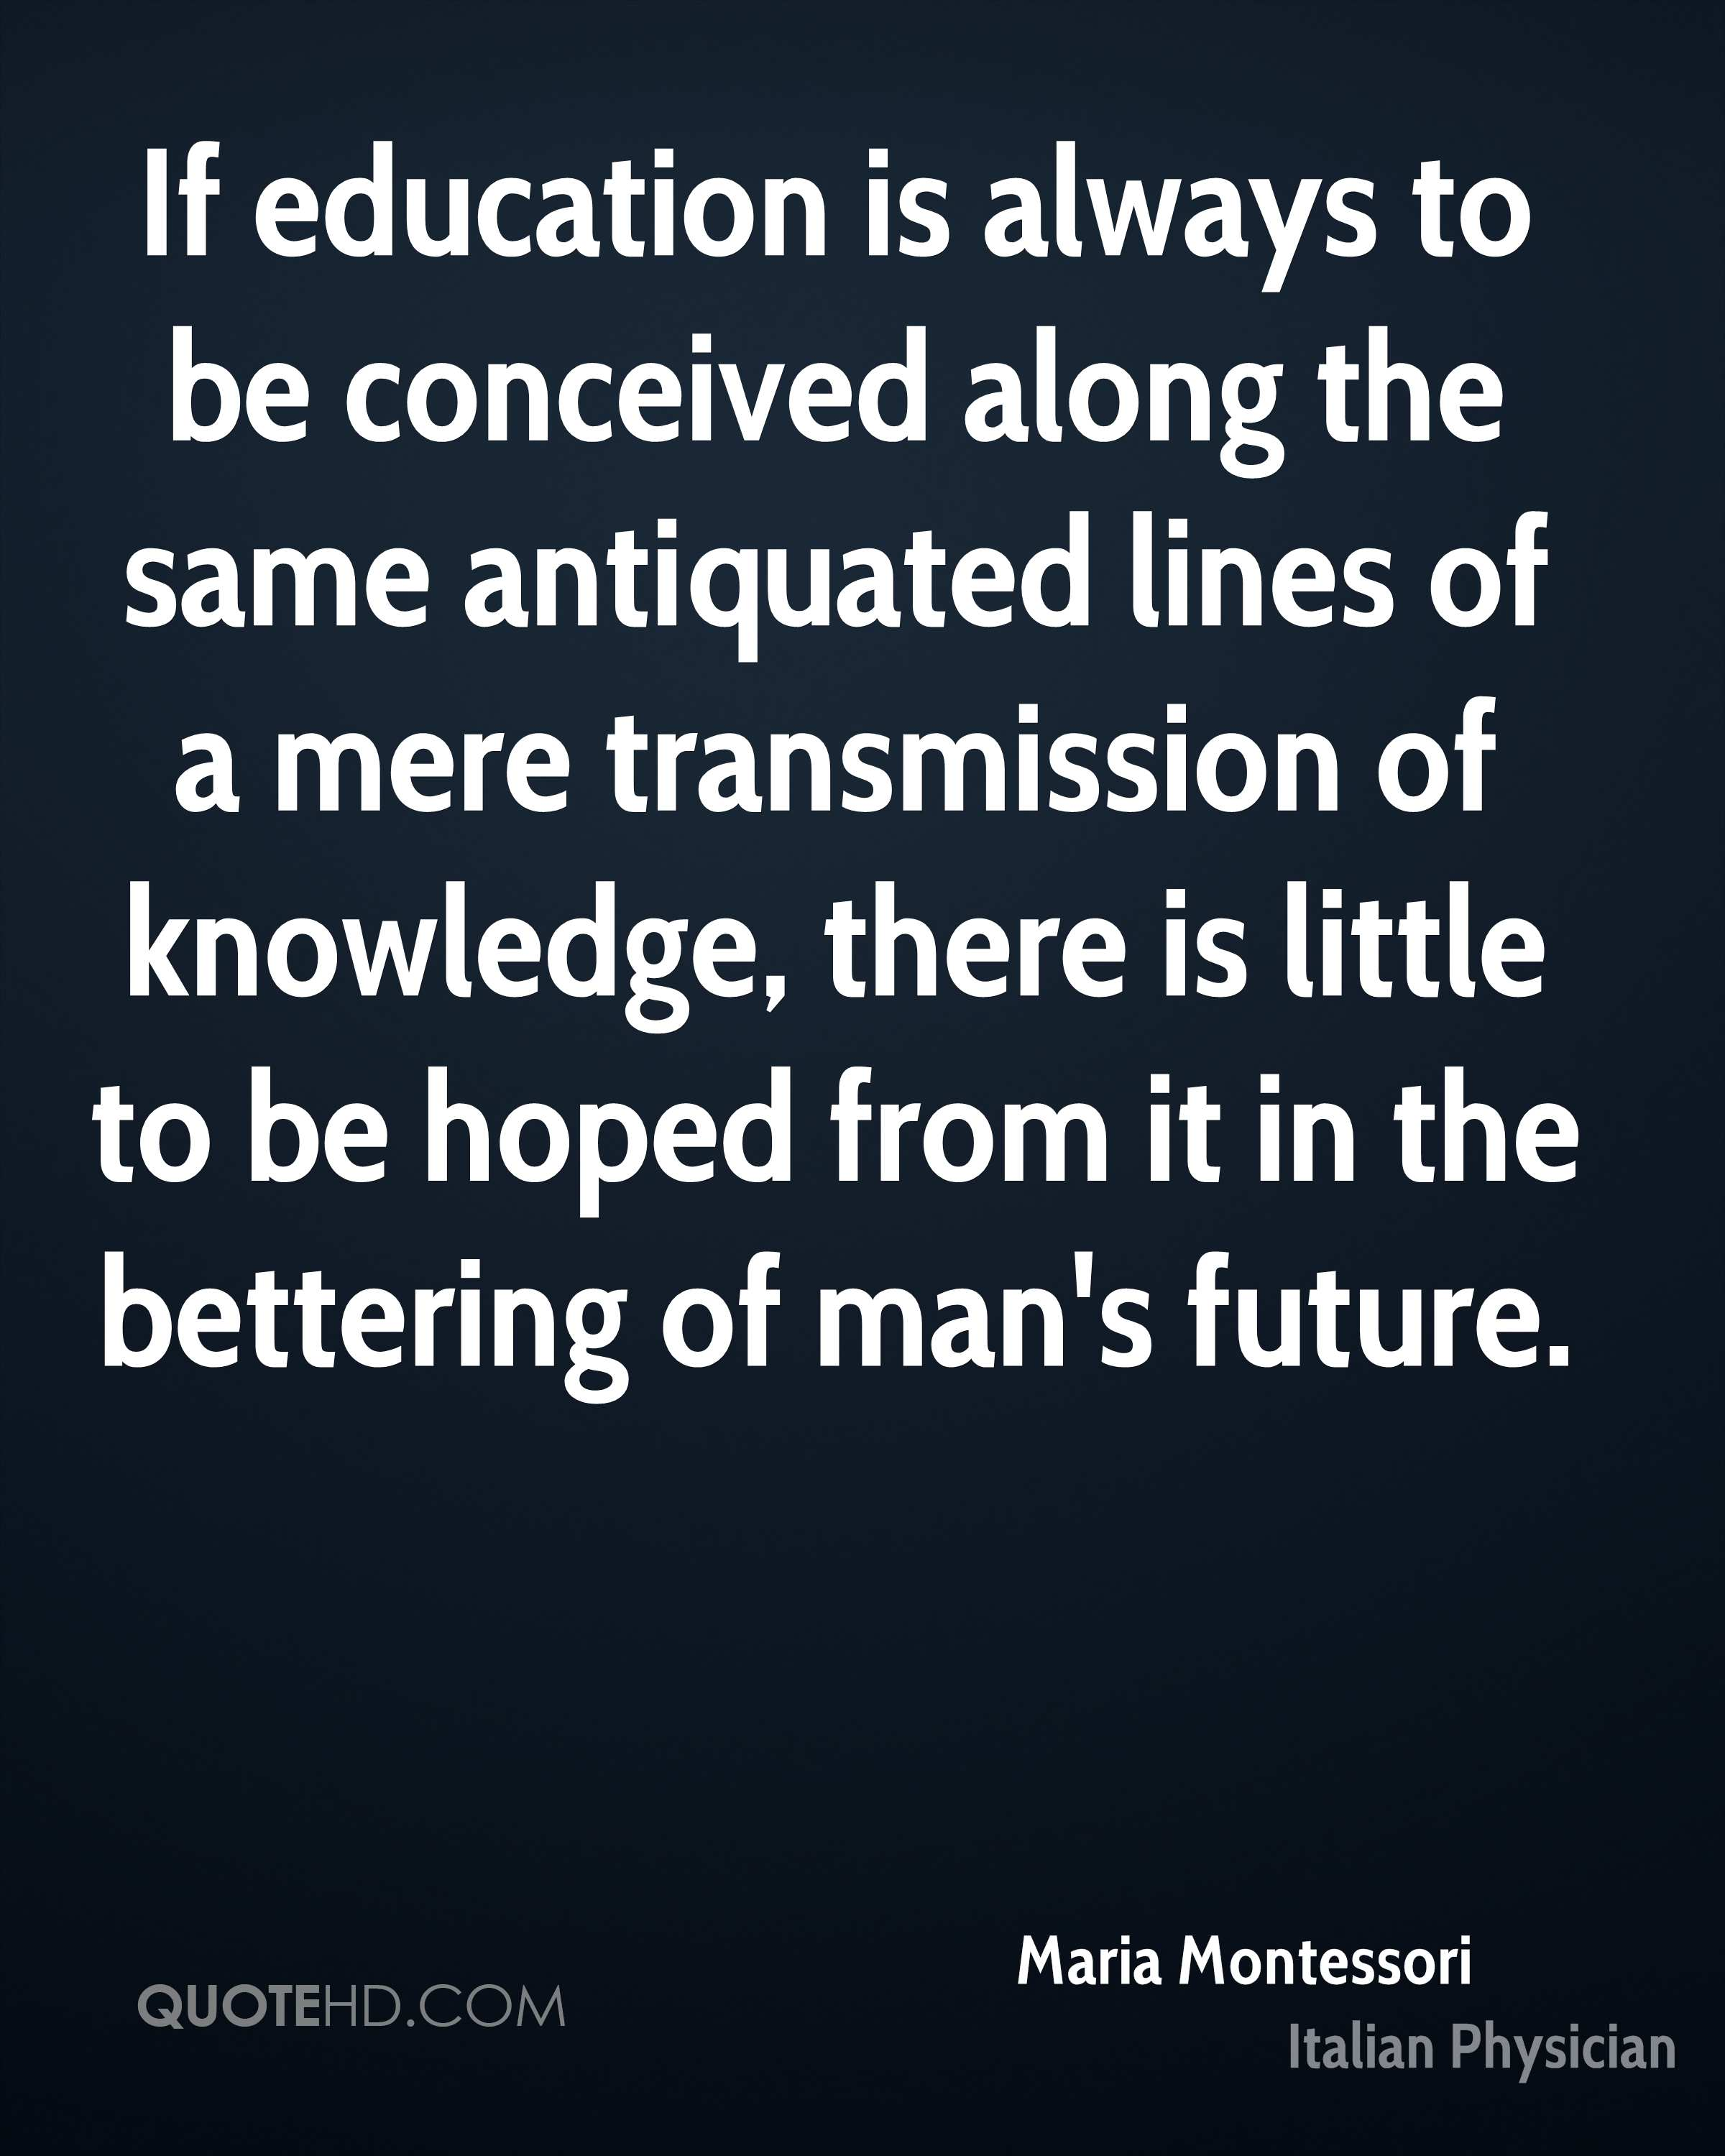 If education is always to be conceived along the same antiquated lines of a mere transmission of knowledge, there is little to be hoped from it in the bettering of man's future.